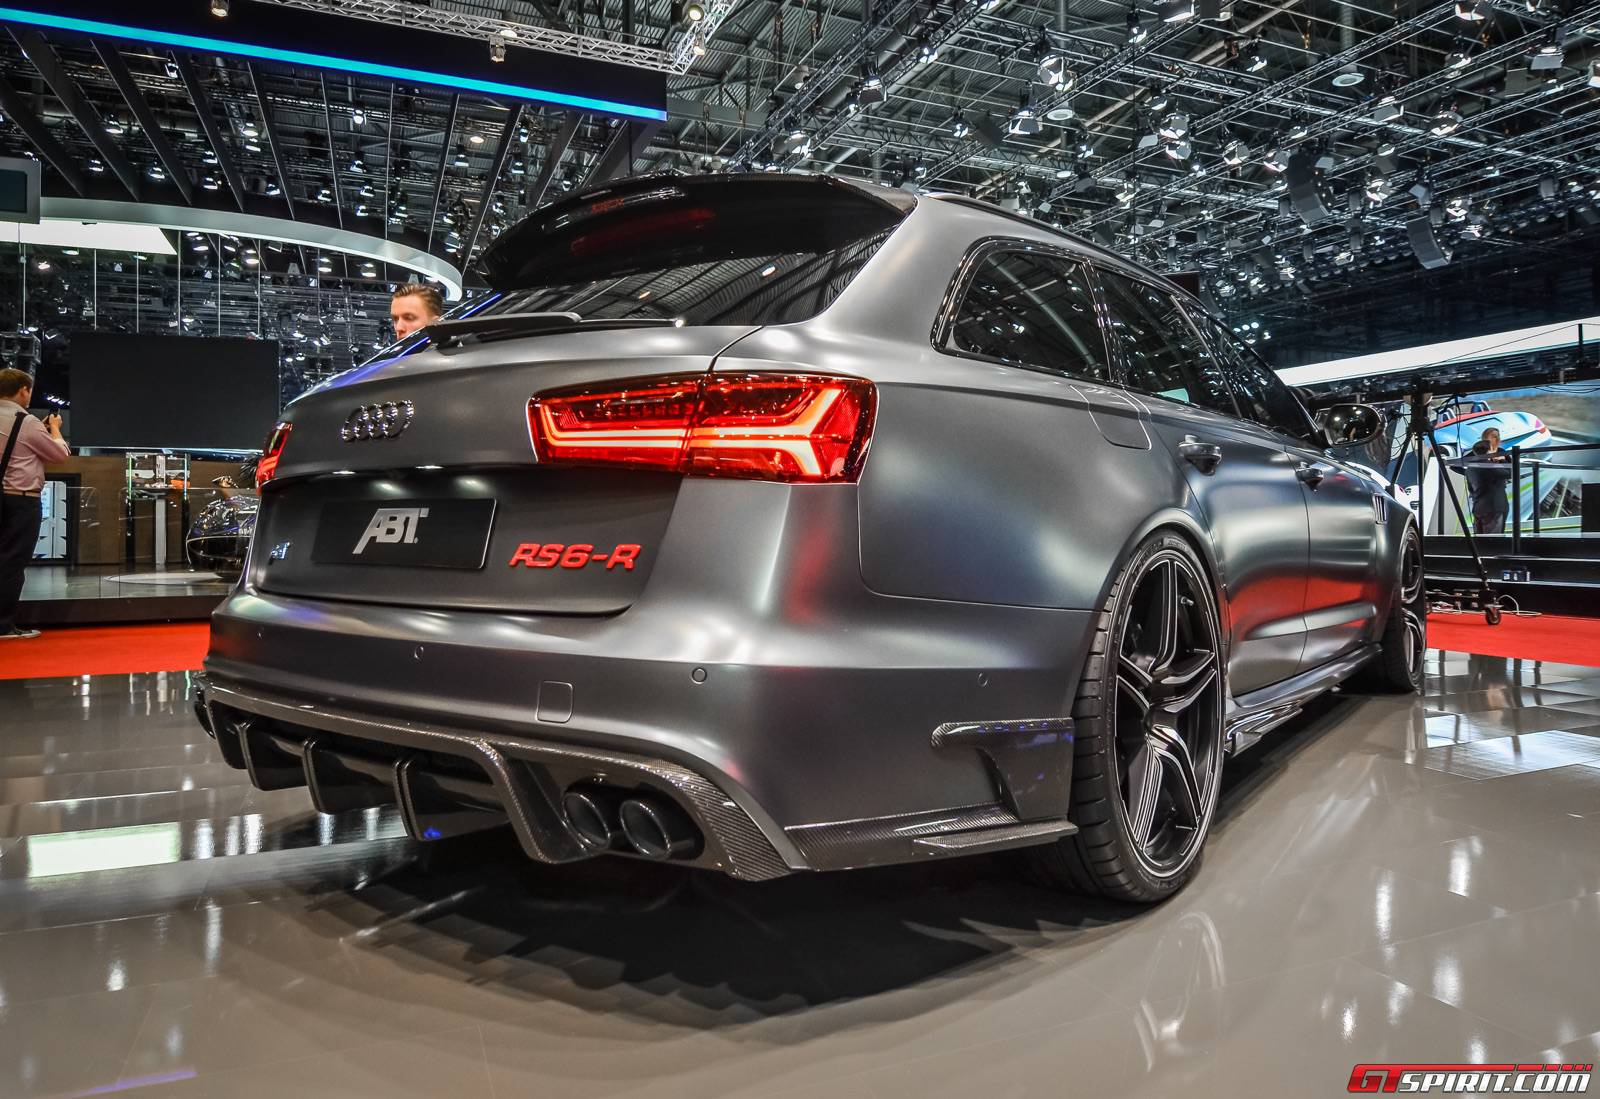 geneva 2015 abt rs6 r gtspirit. Black Bedroom Furniture Sets. Home Design Ideas